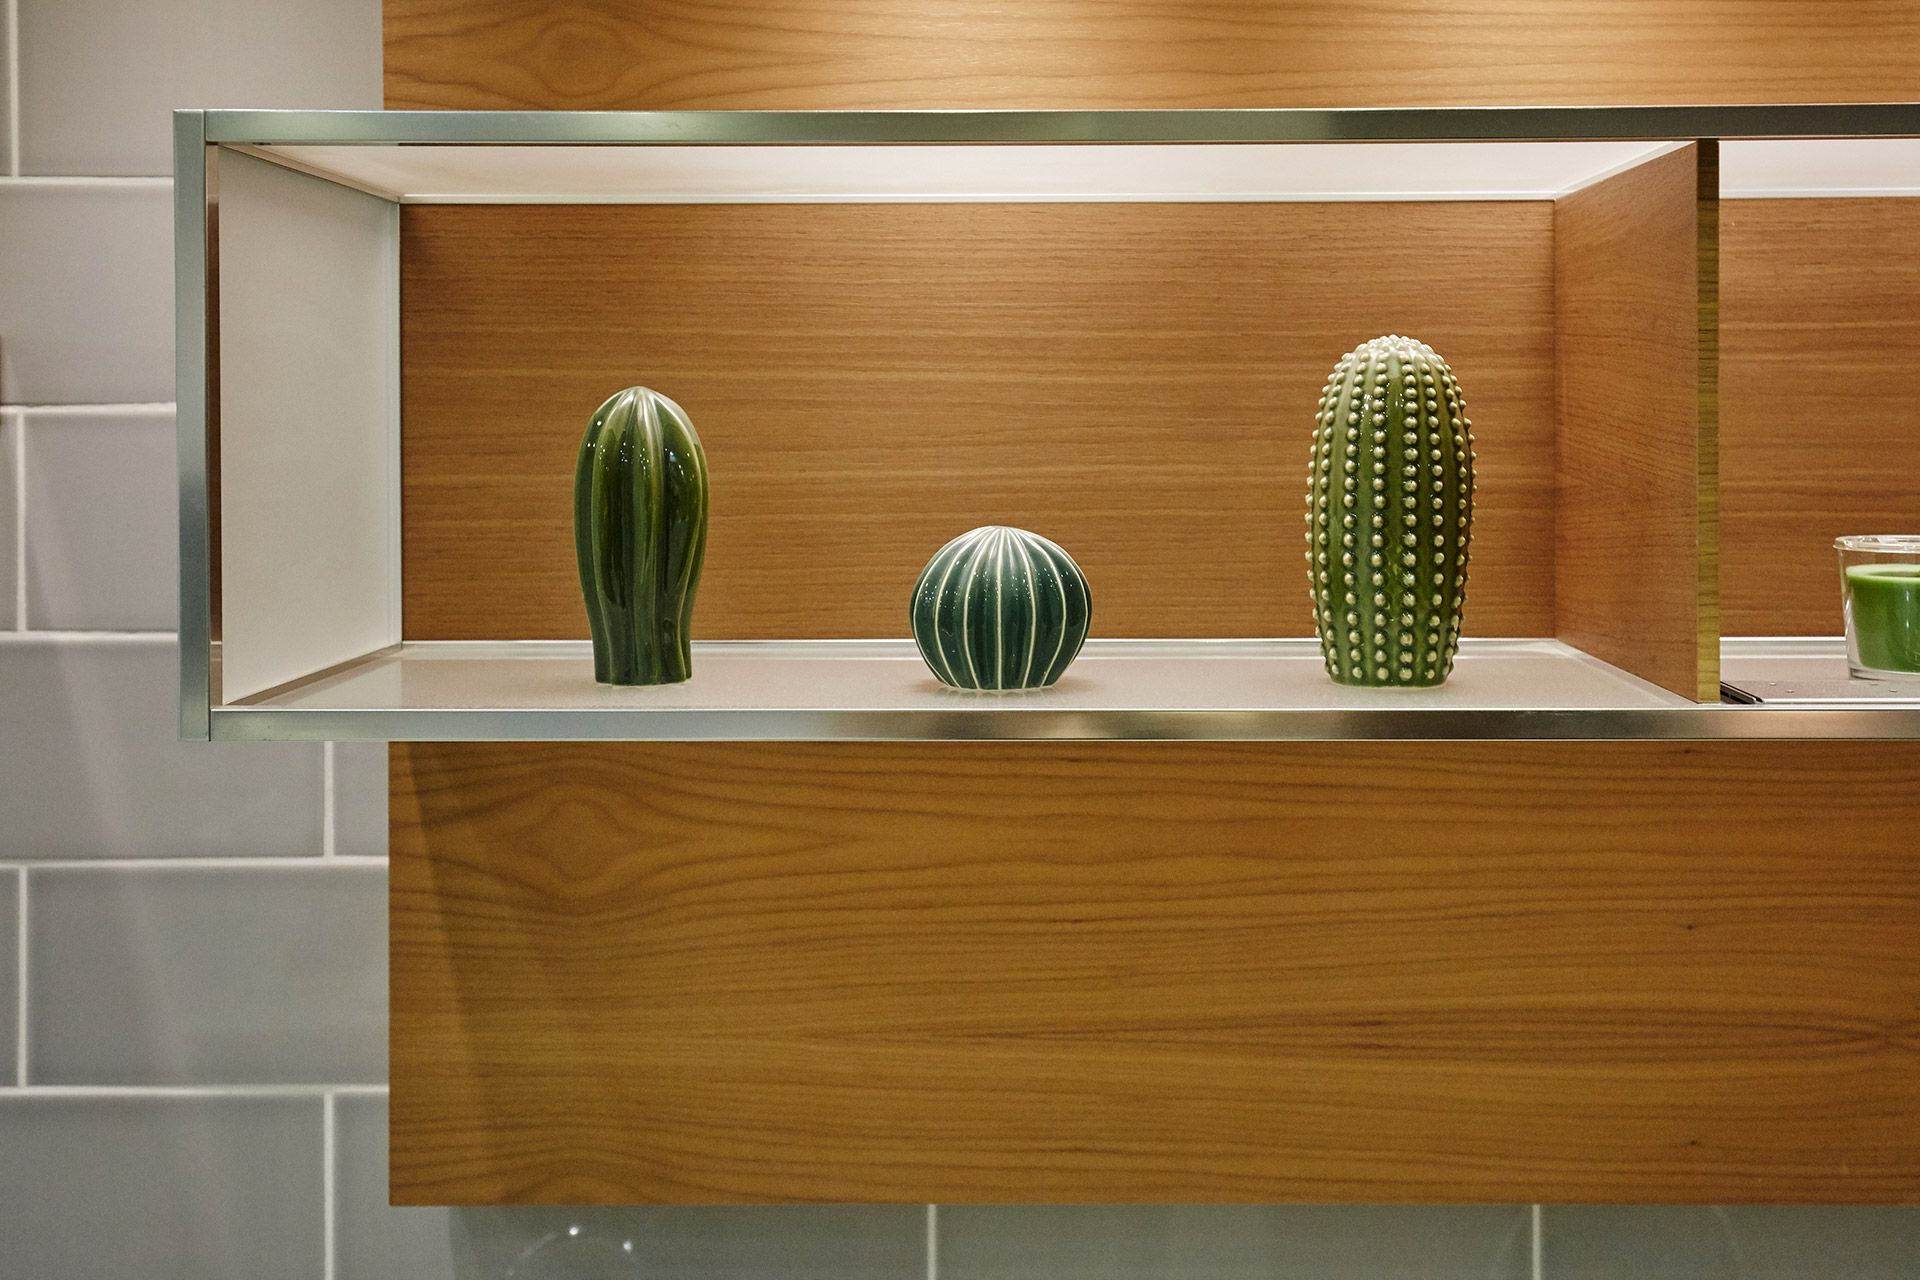 Cactus sculptures in the Danebury vacation rental offered by London Perfect